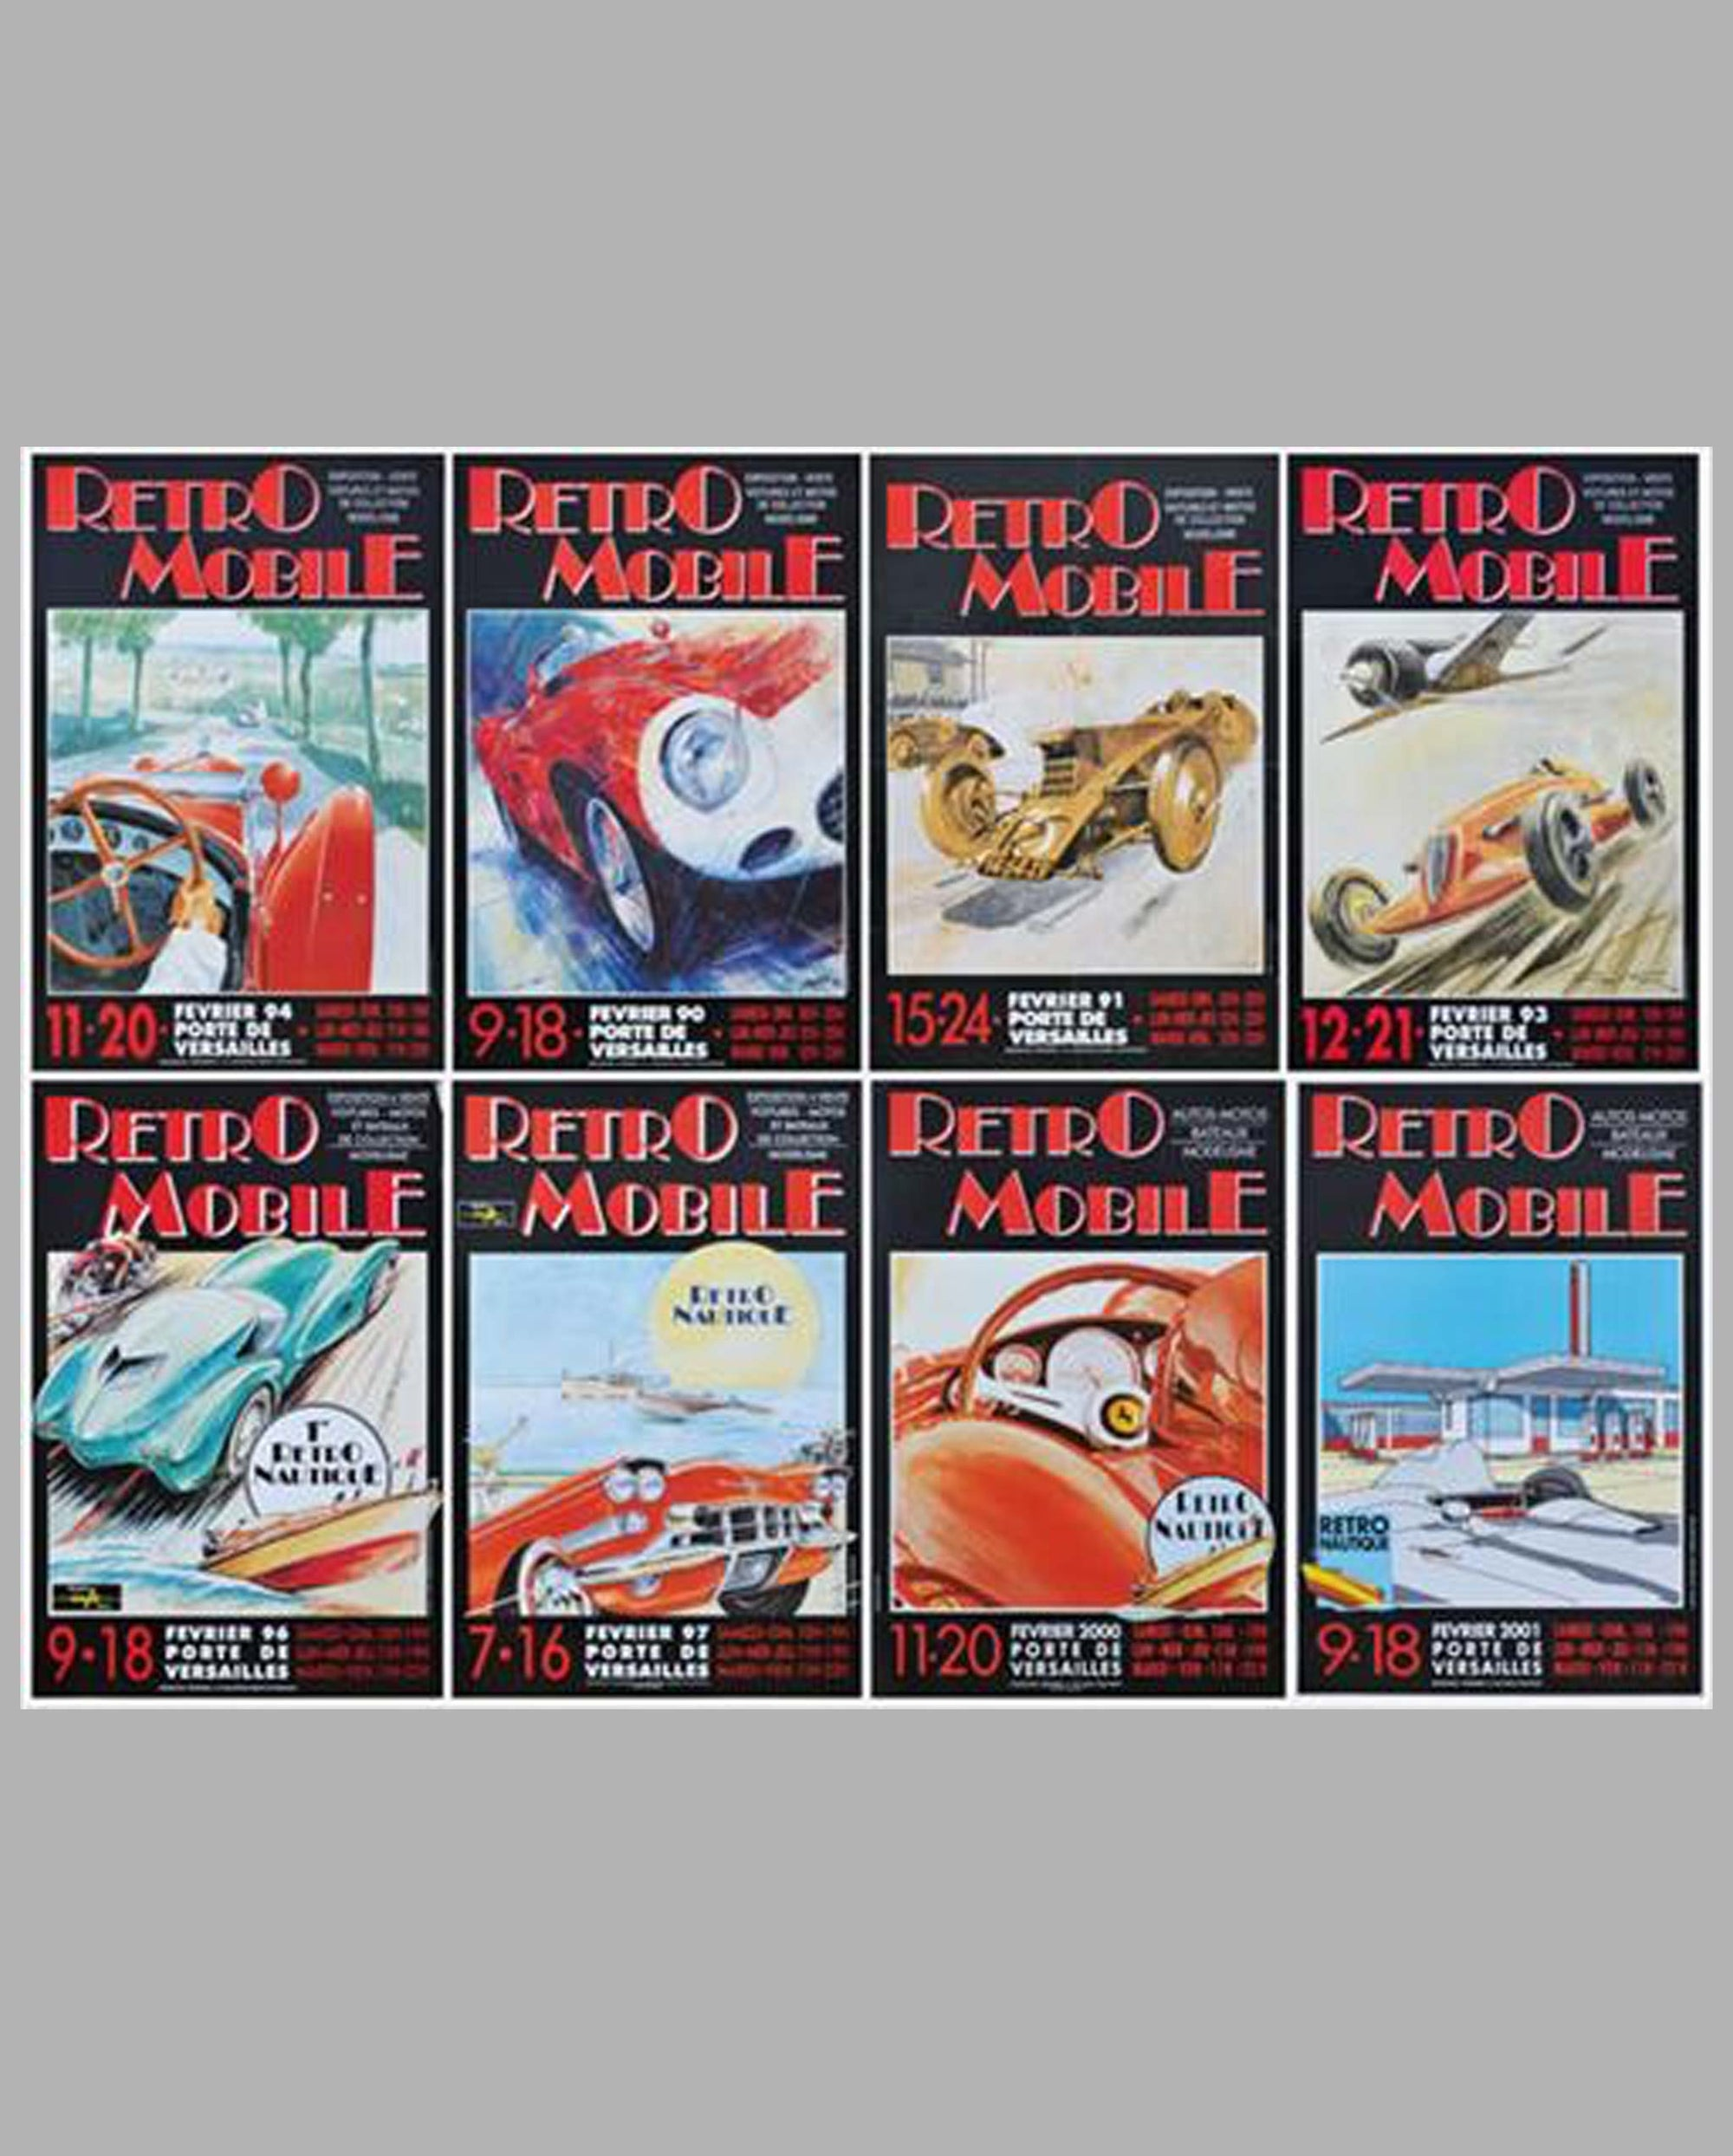 Retromobile event posters from the annual vintage car show in Paris, lot of 8